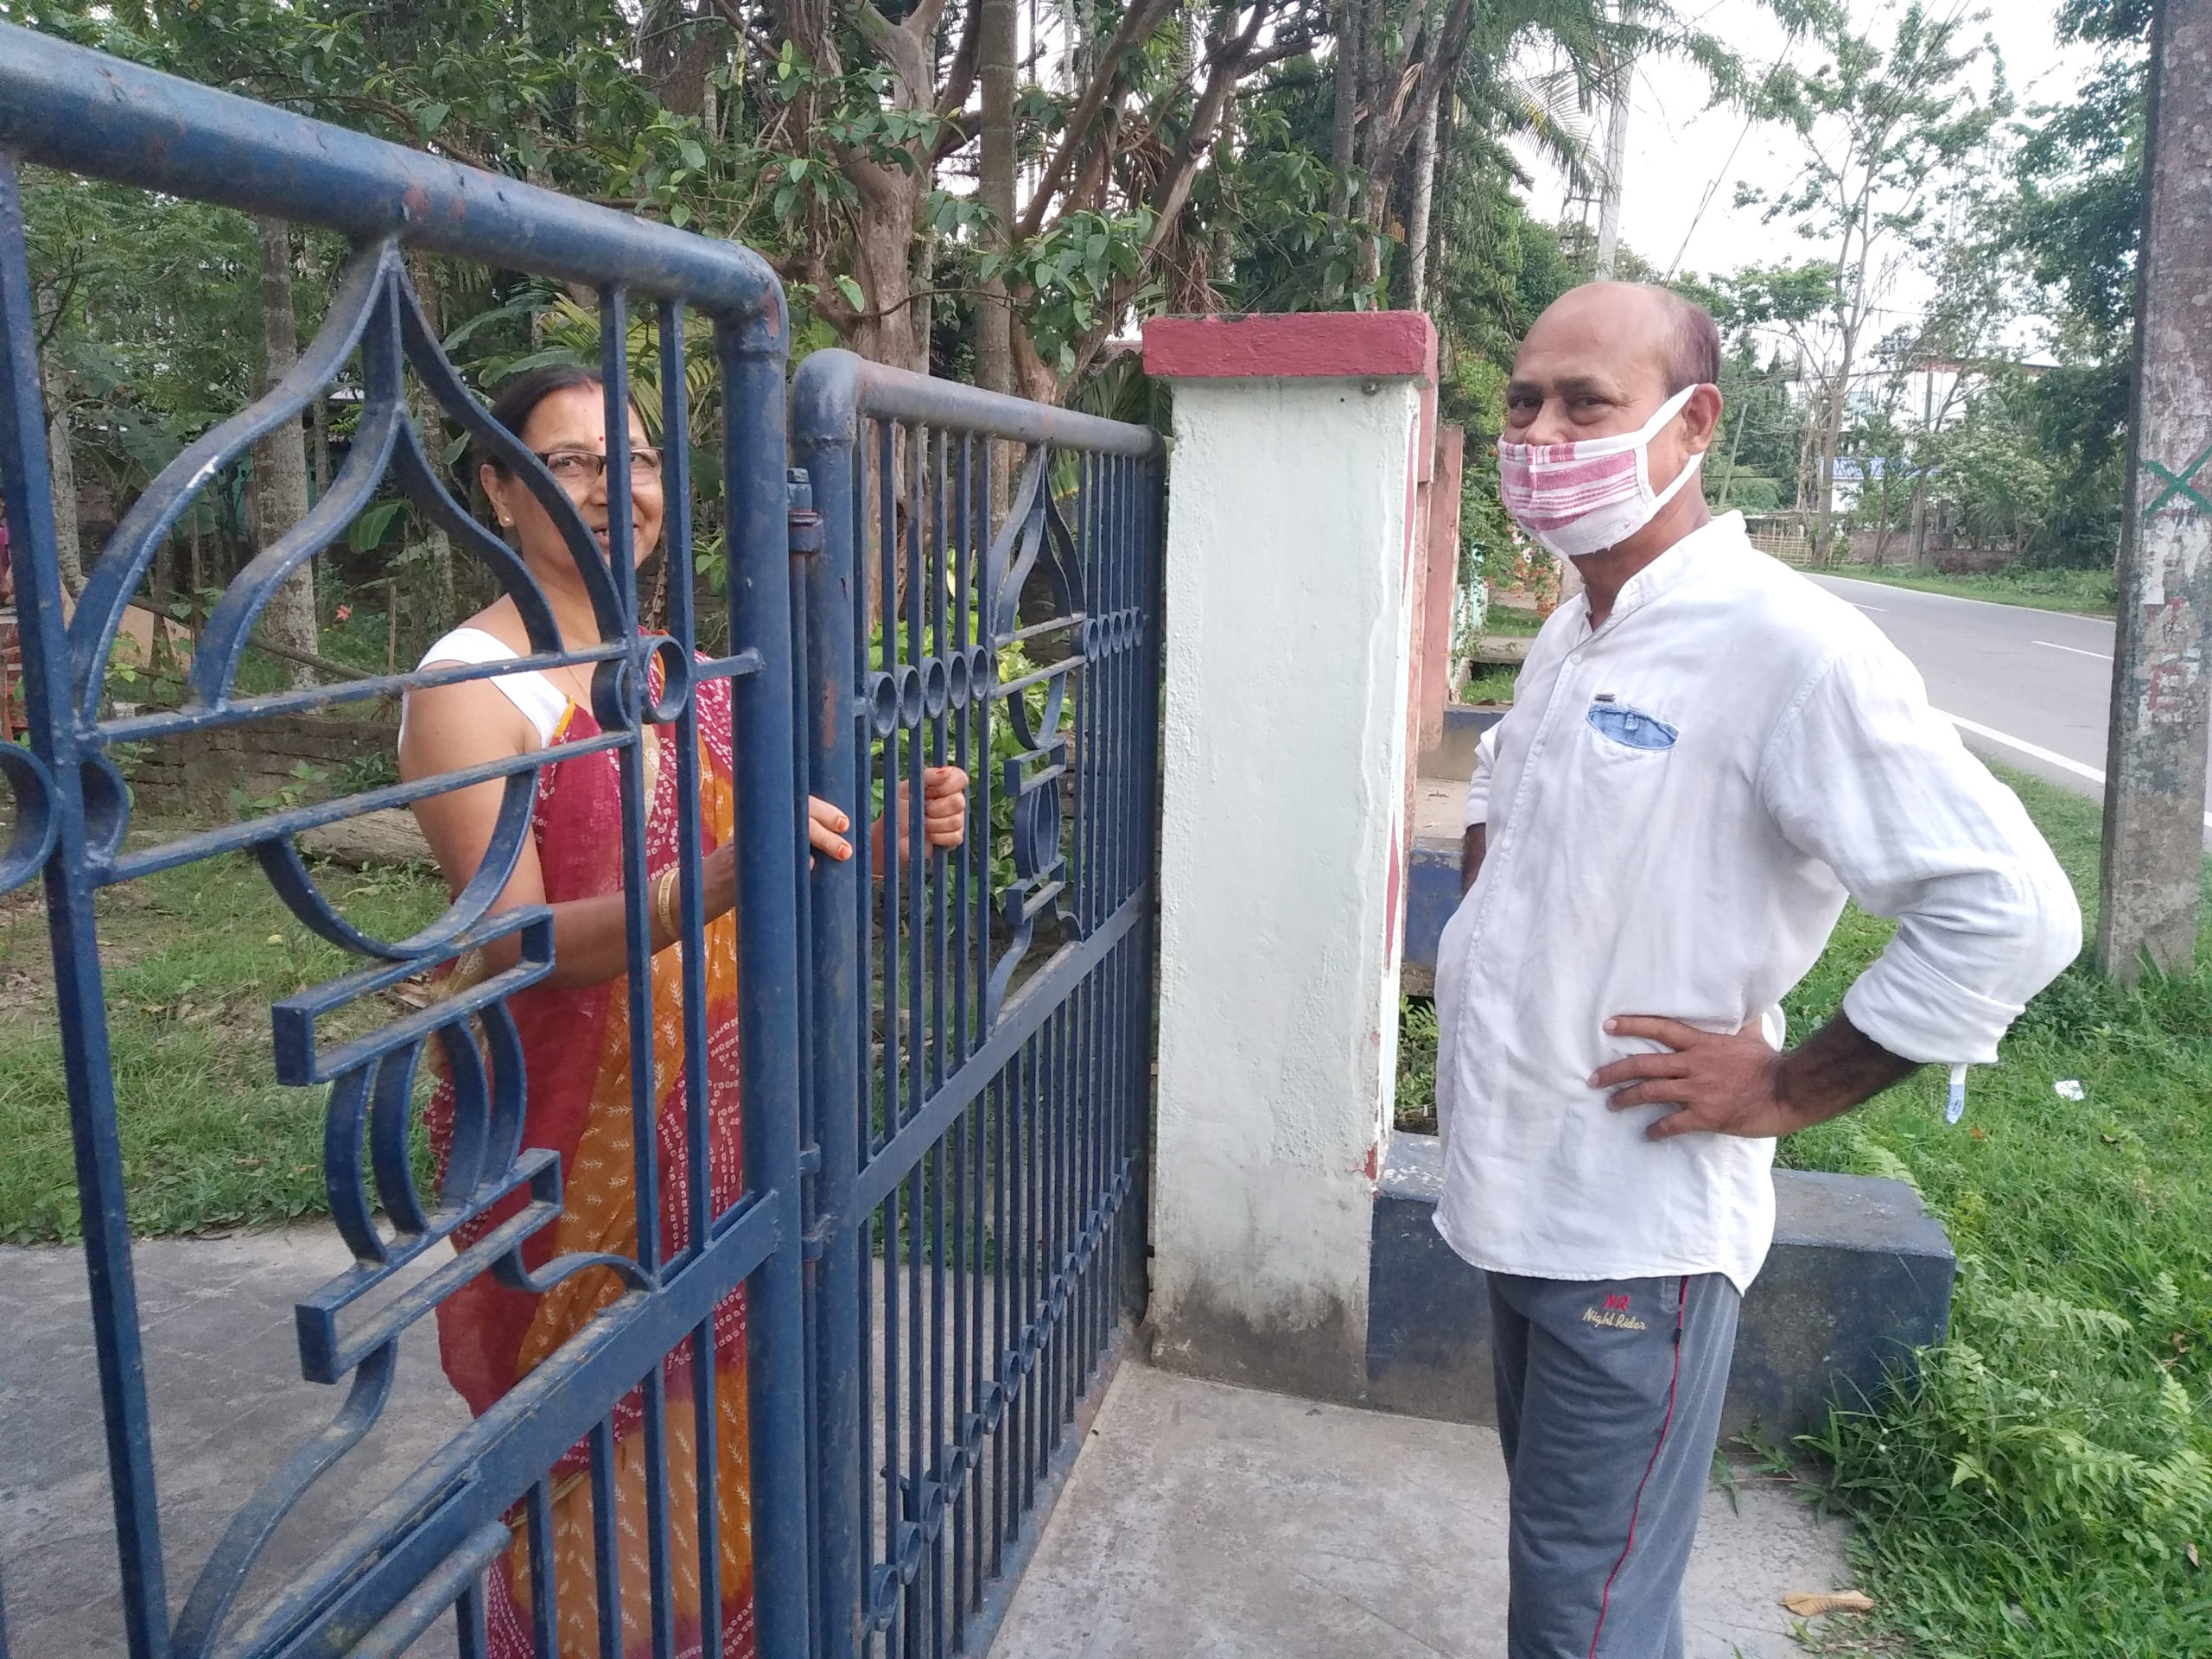 A photograph of two people interacting across a blue gate.